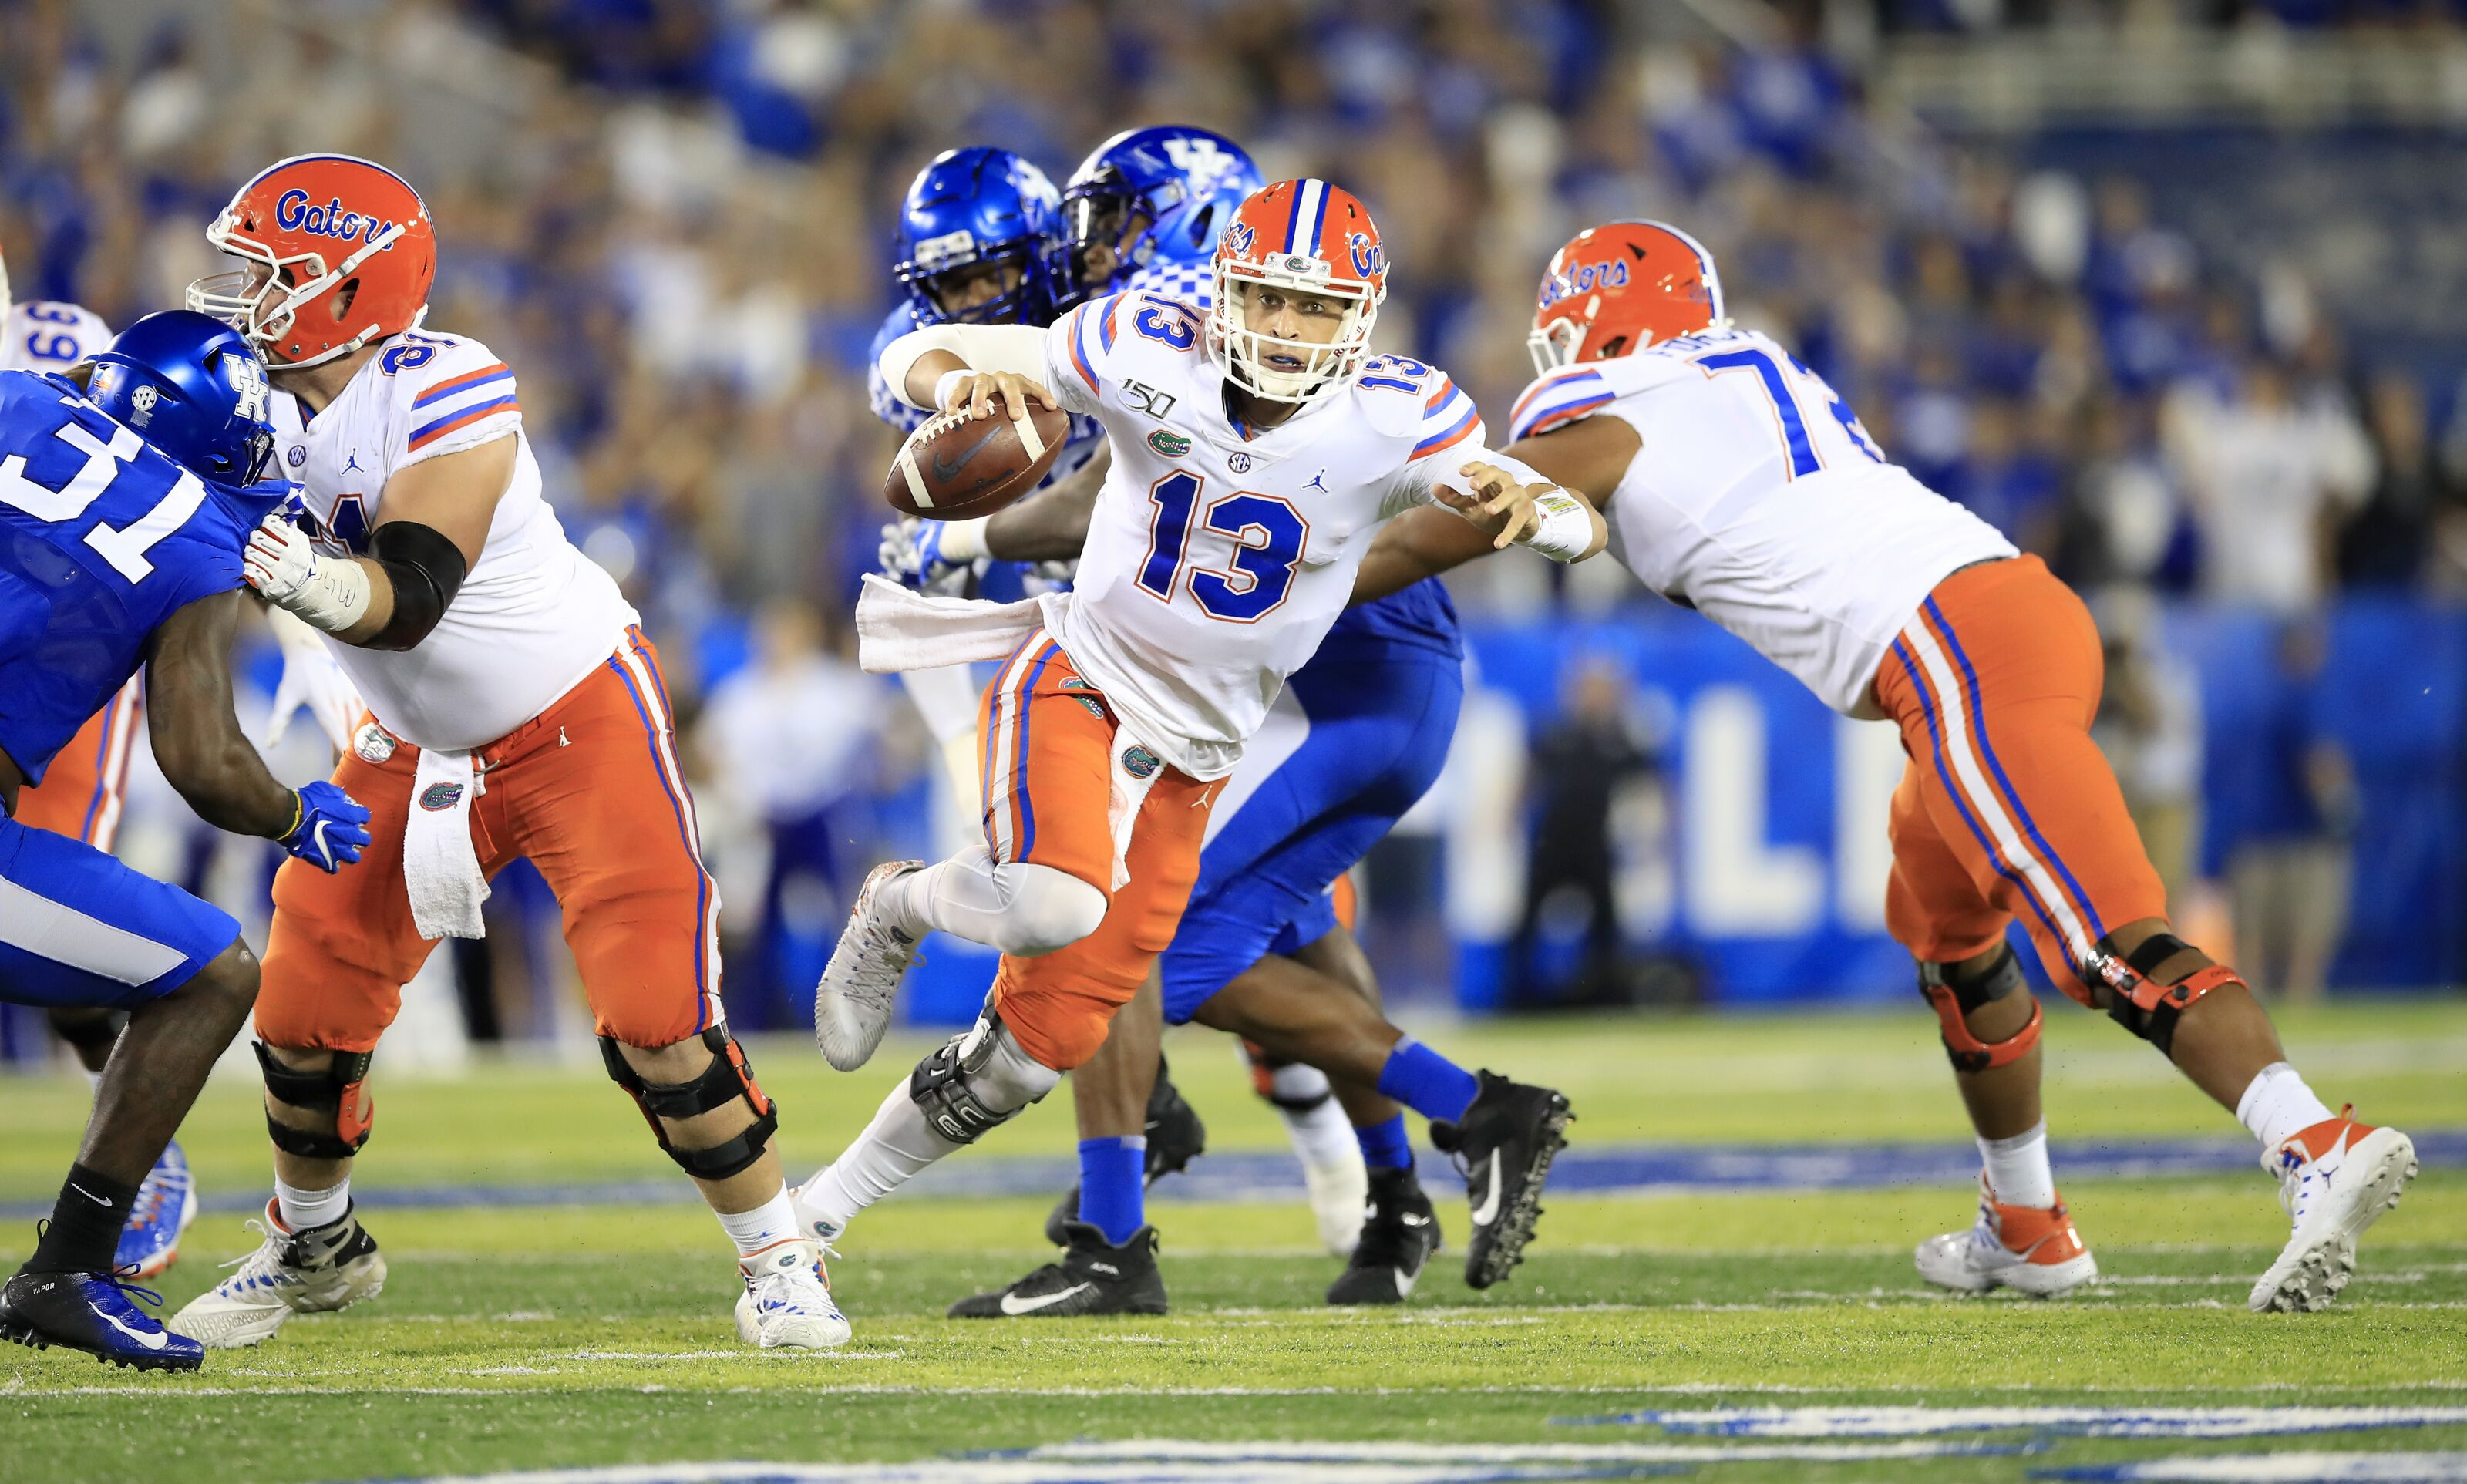 Florida football: Gators' injury report for game with Tennessee